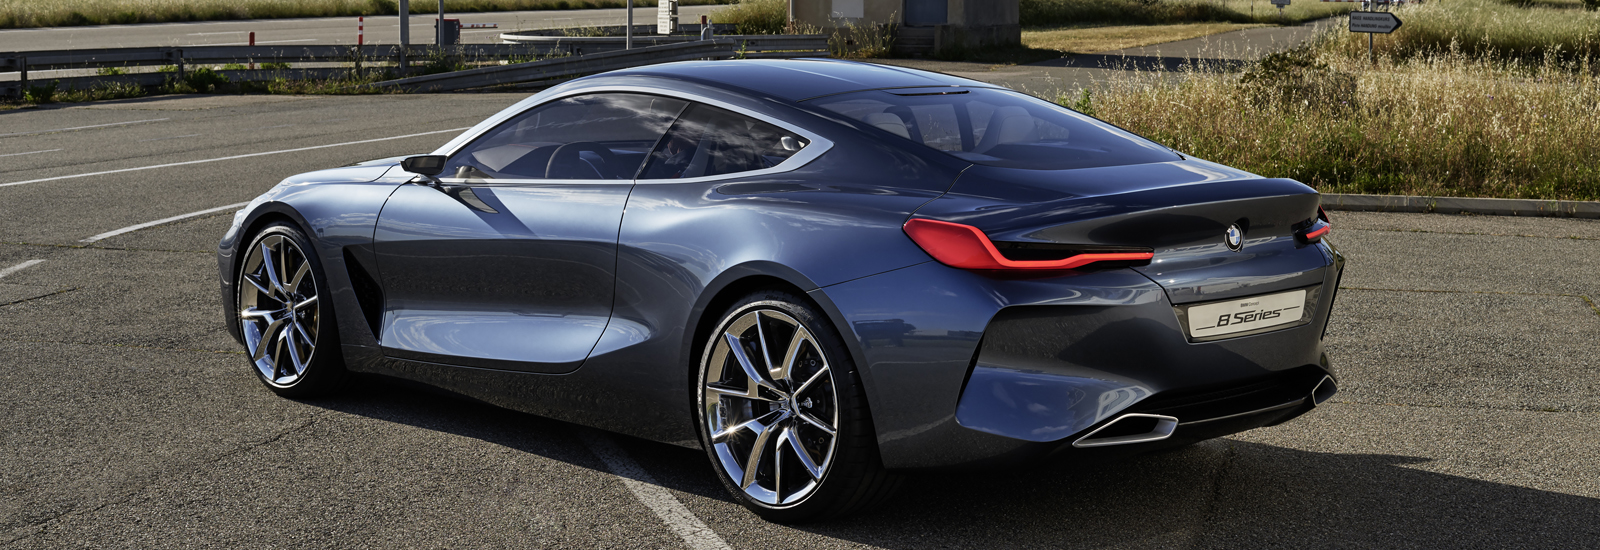 2018 bmw v12.  2018 models could also be offered with bmwu0027s xdrive allwheeldrive system and a  plugin hybrid model developed inside 2018 bmw v12